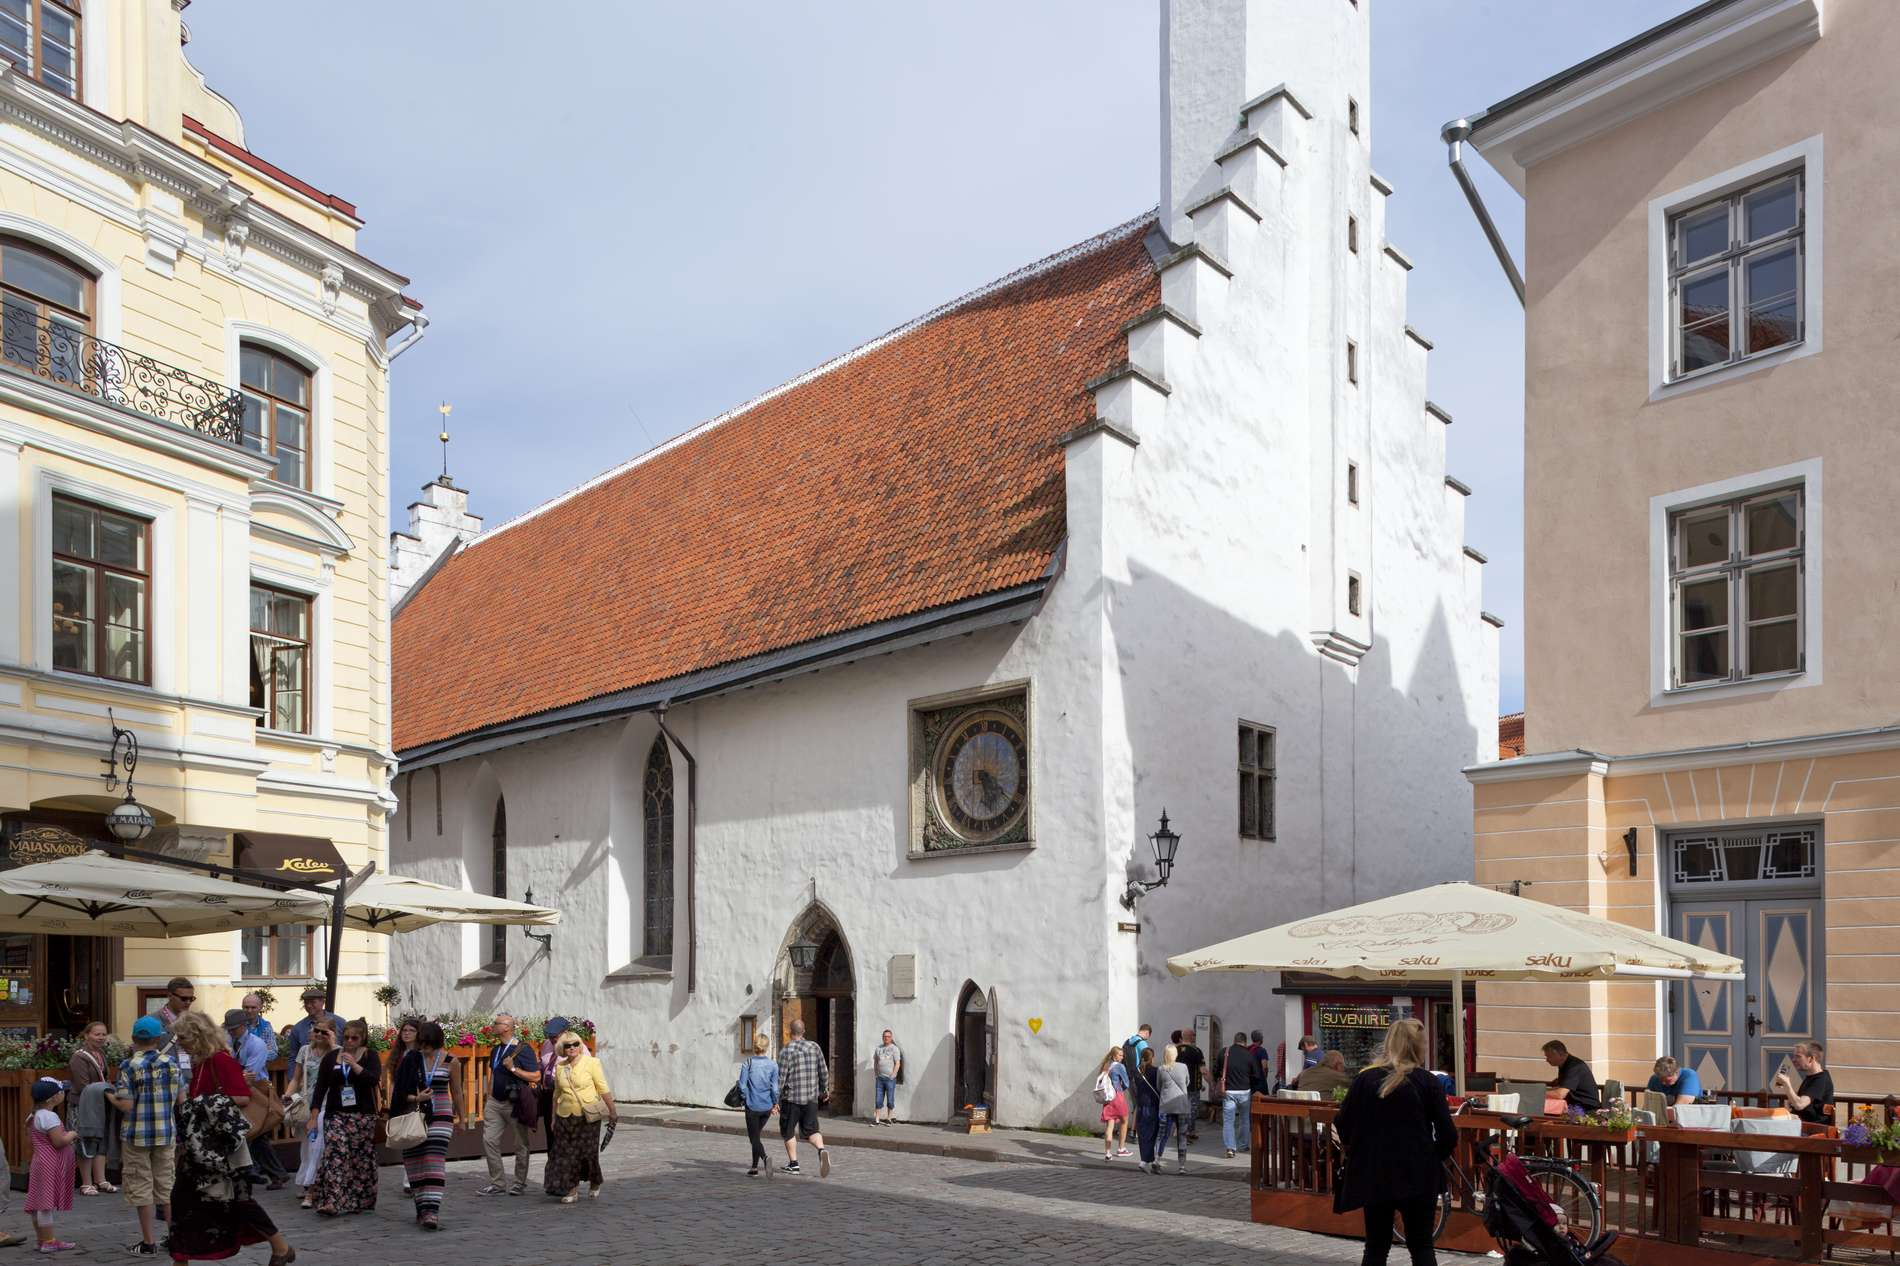 Holy Spirit Church in Tallinn, Estonia